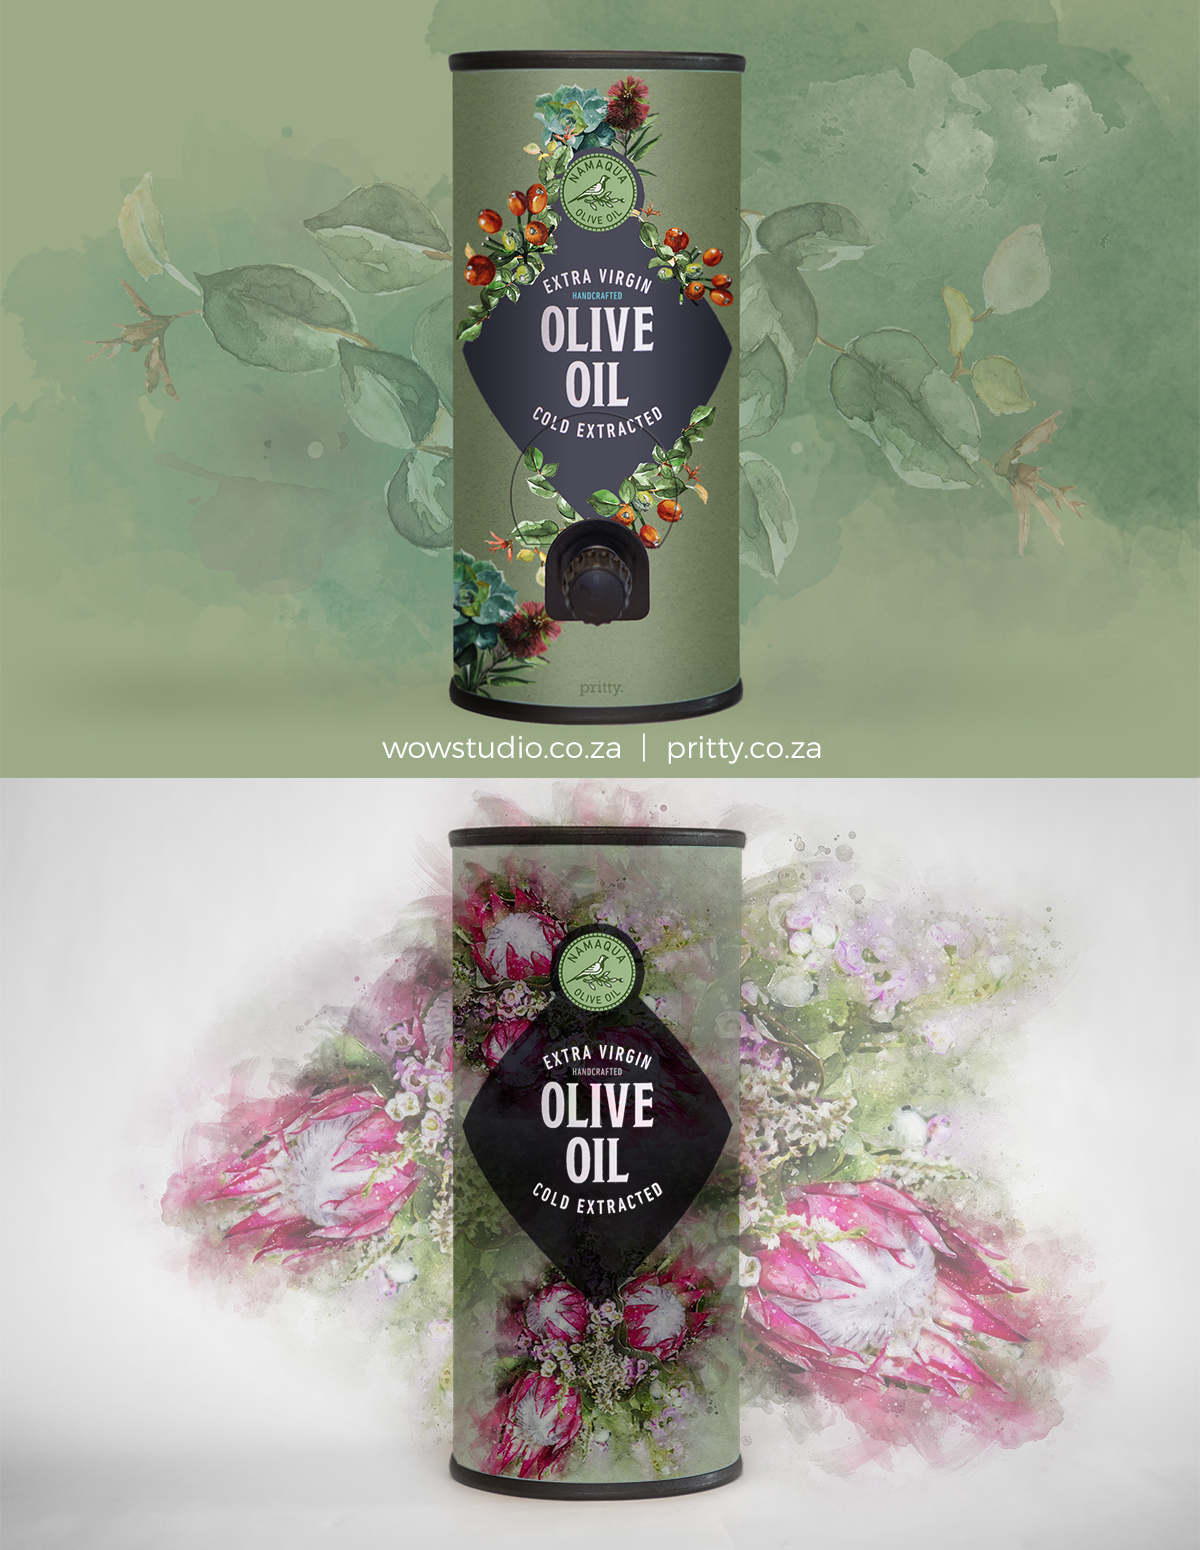 pritty olive oil decanters corporate gift